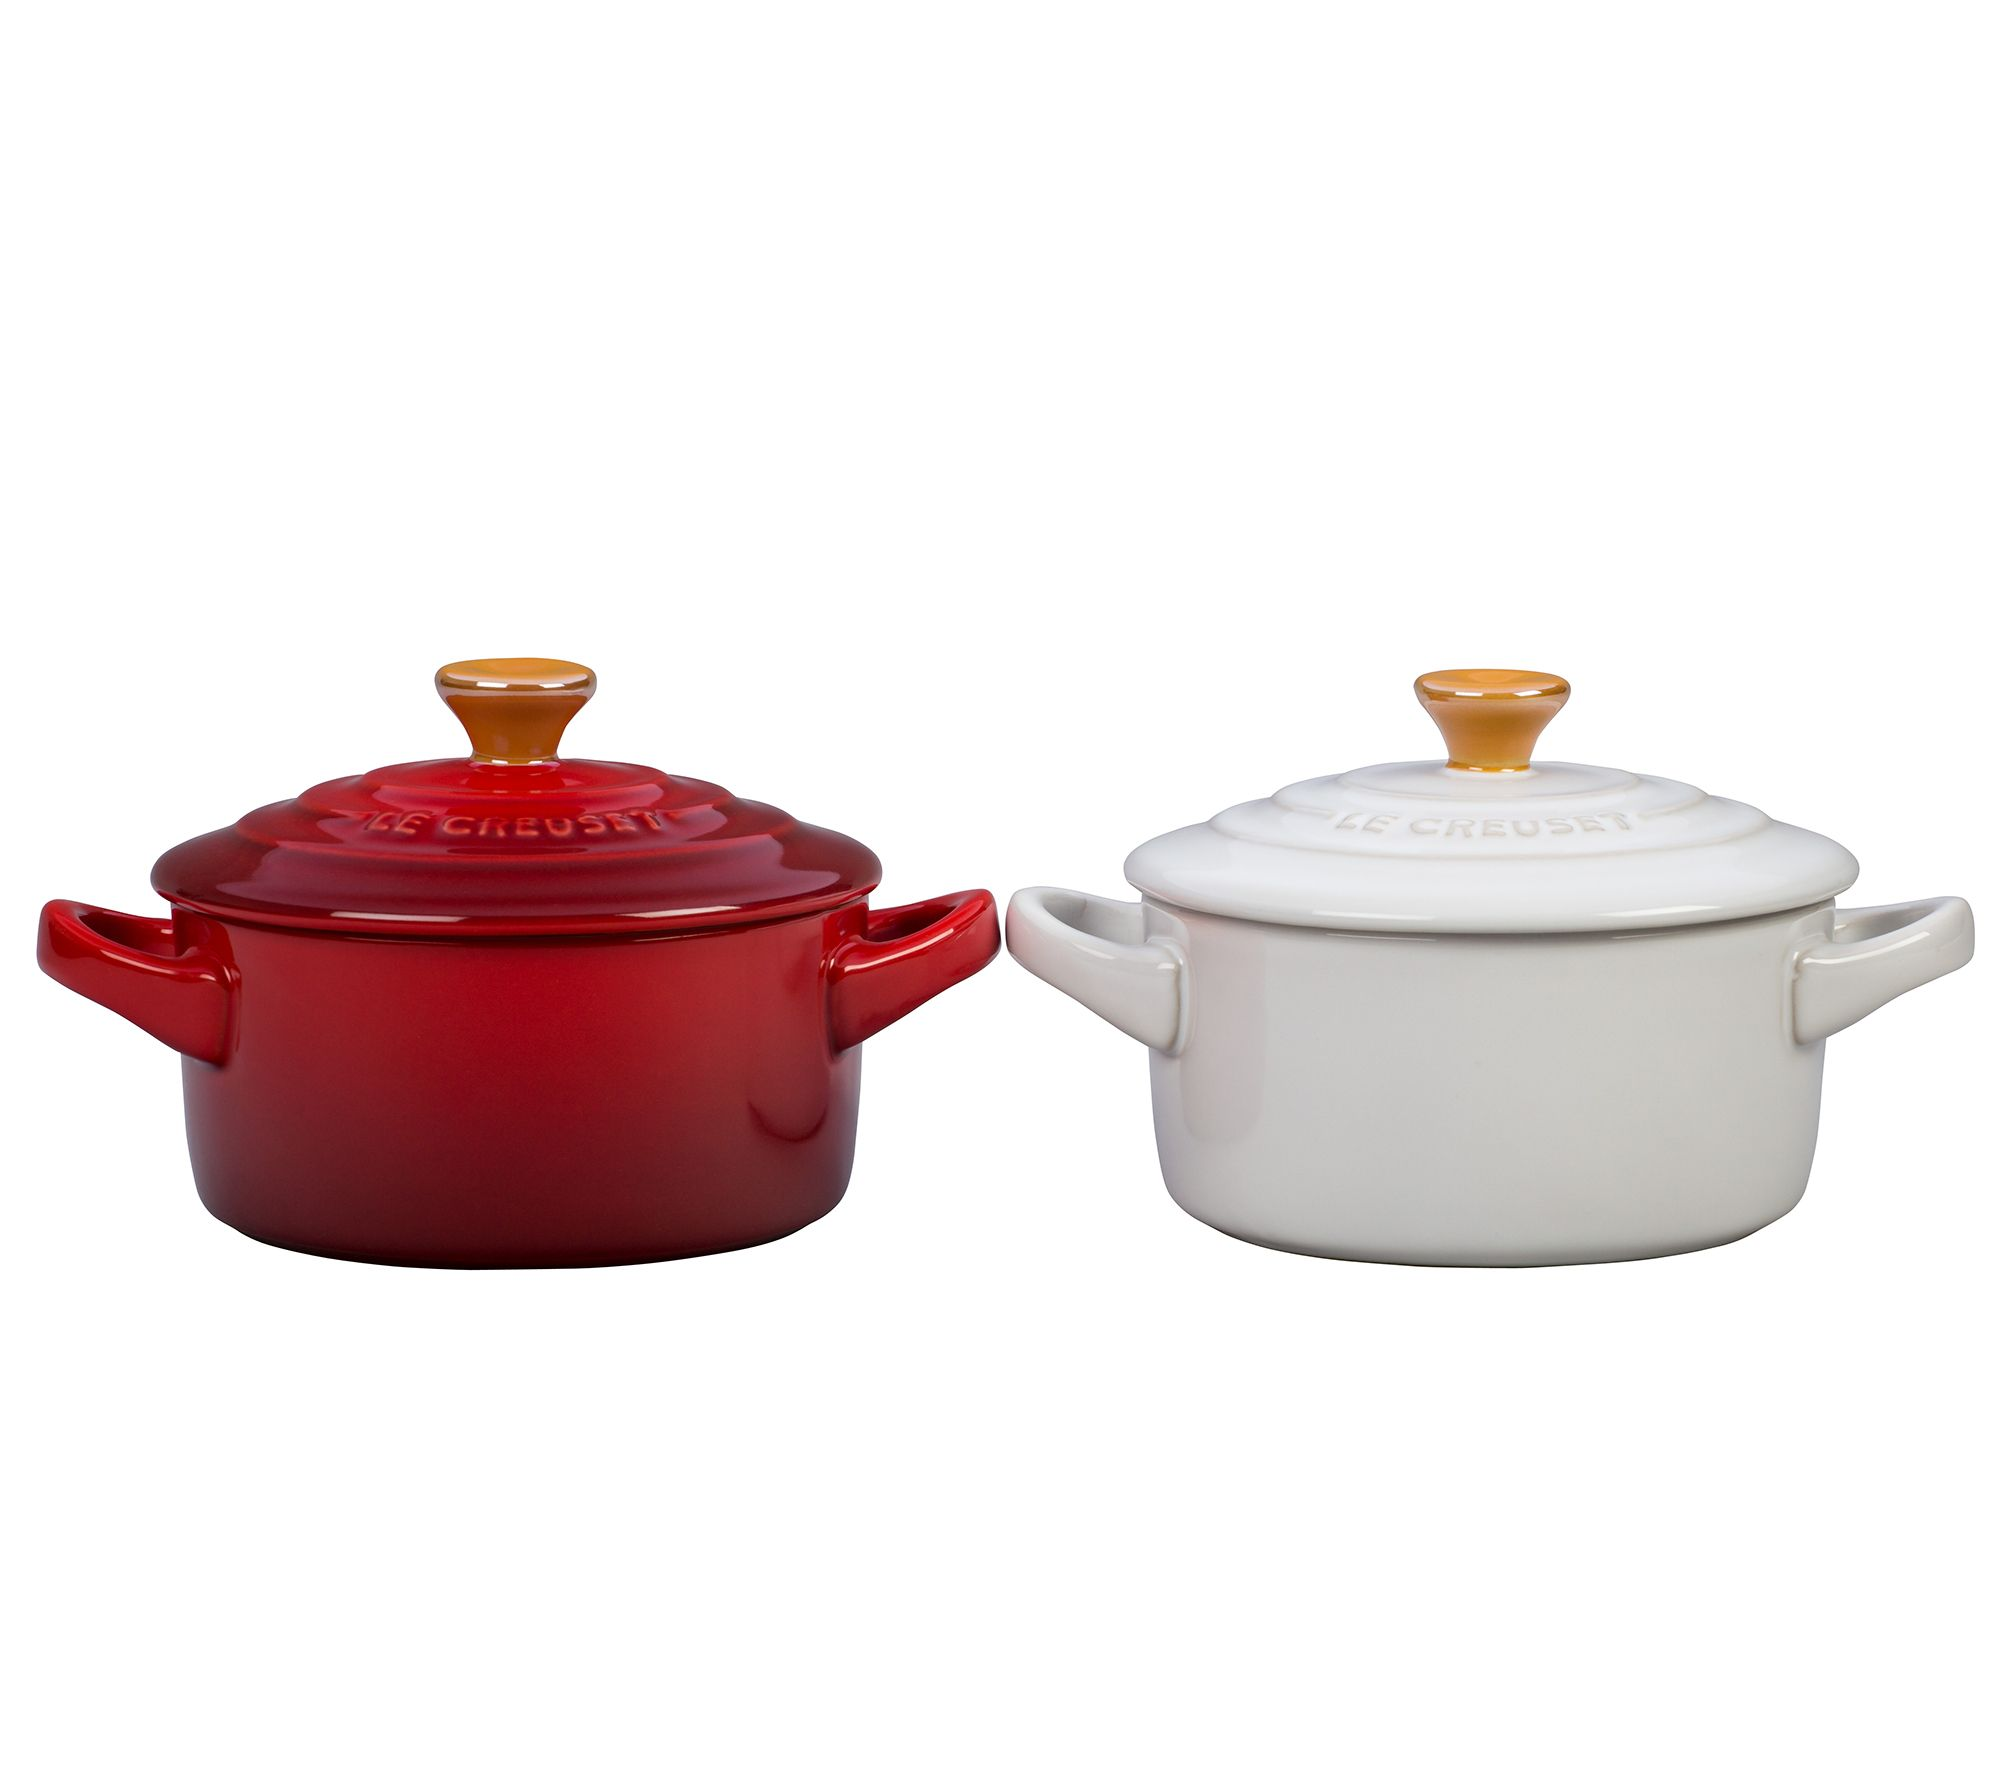 le creuset red and white 8 oz mini cocotte setwith gold knob. Black Bedroom Furniture Sets. Home Design Ideas